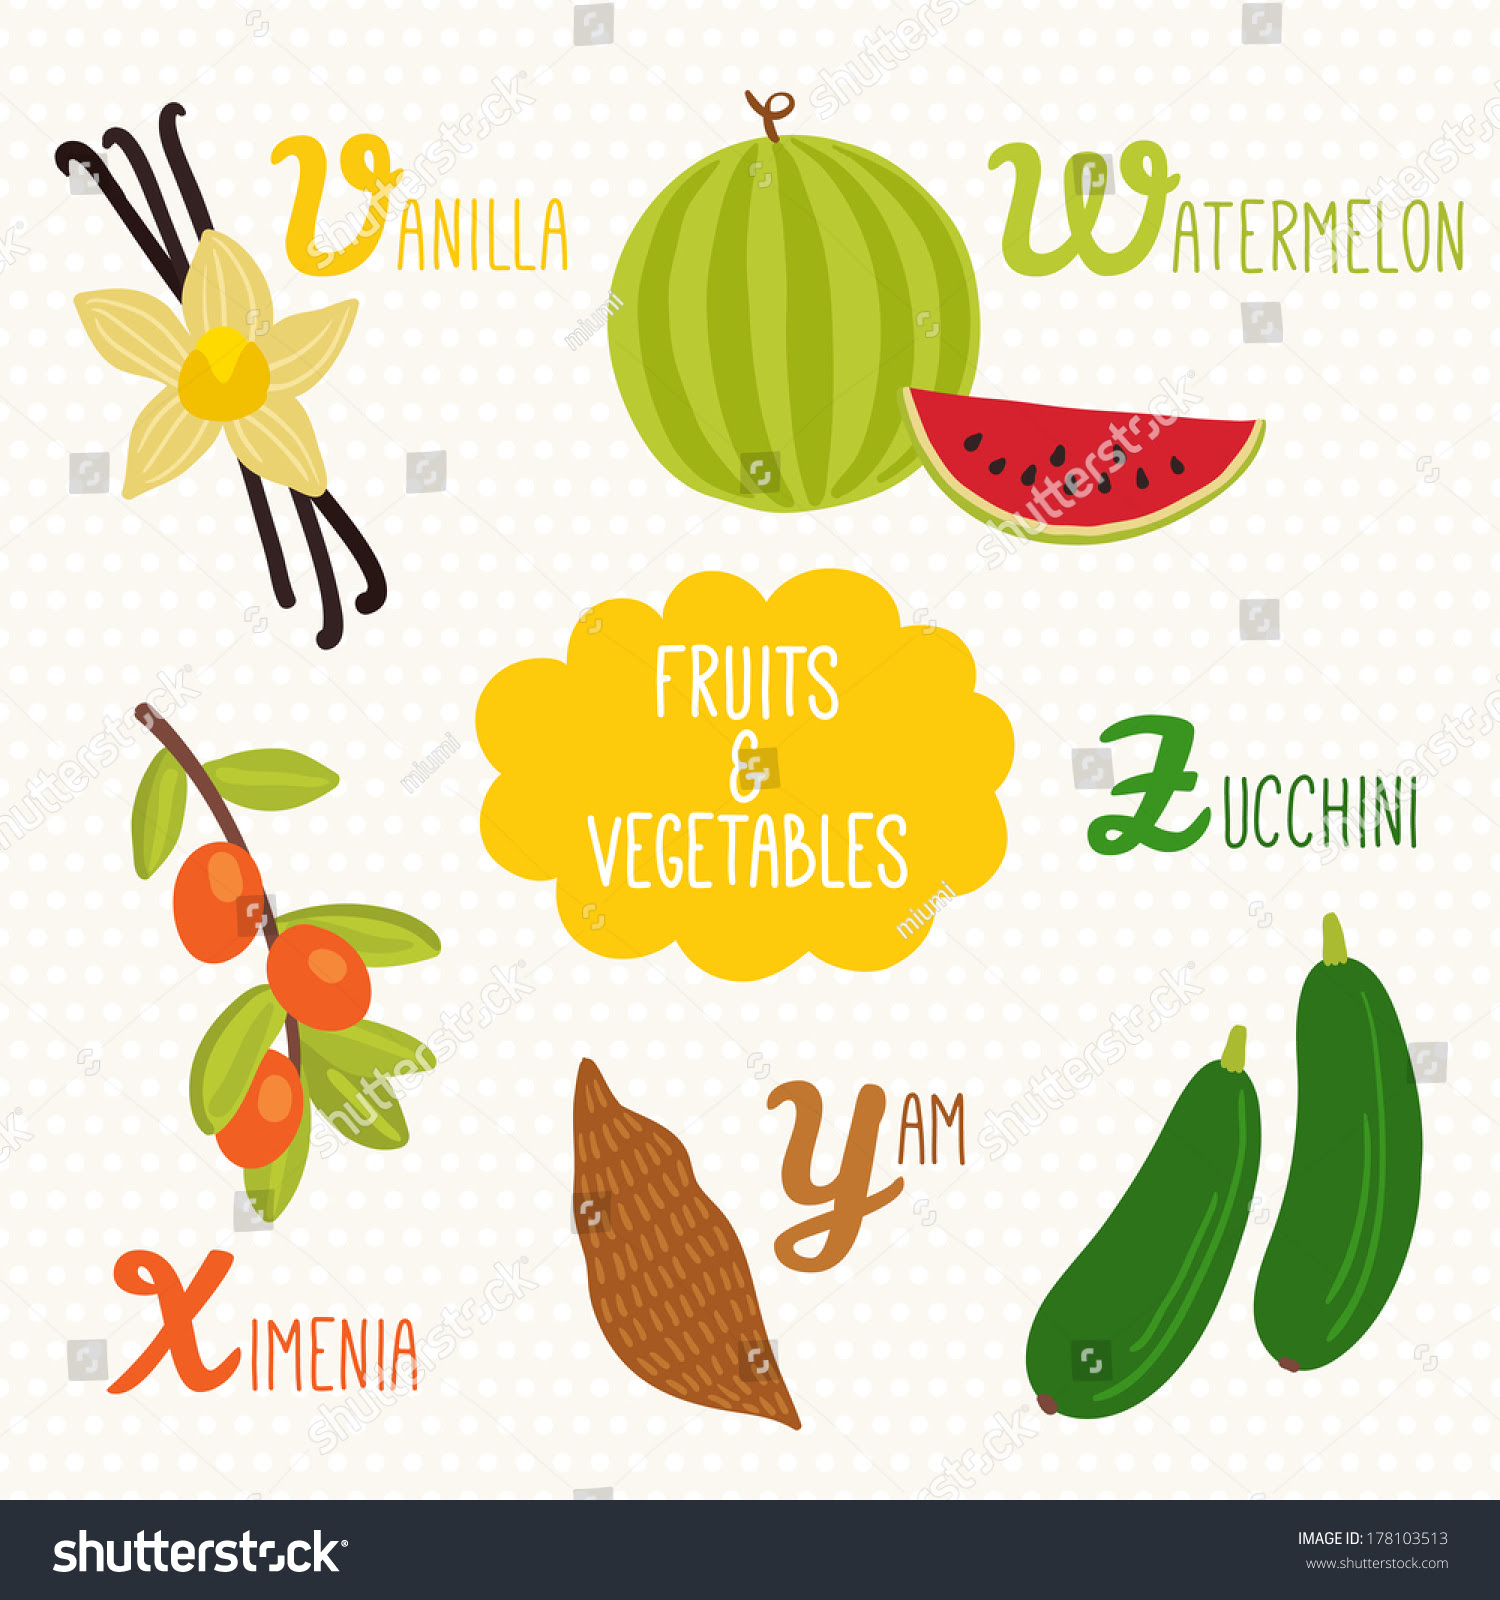 Vegetable Beginning With D - English Lessons